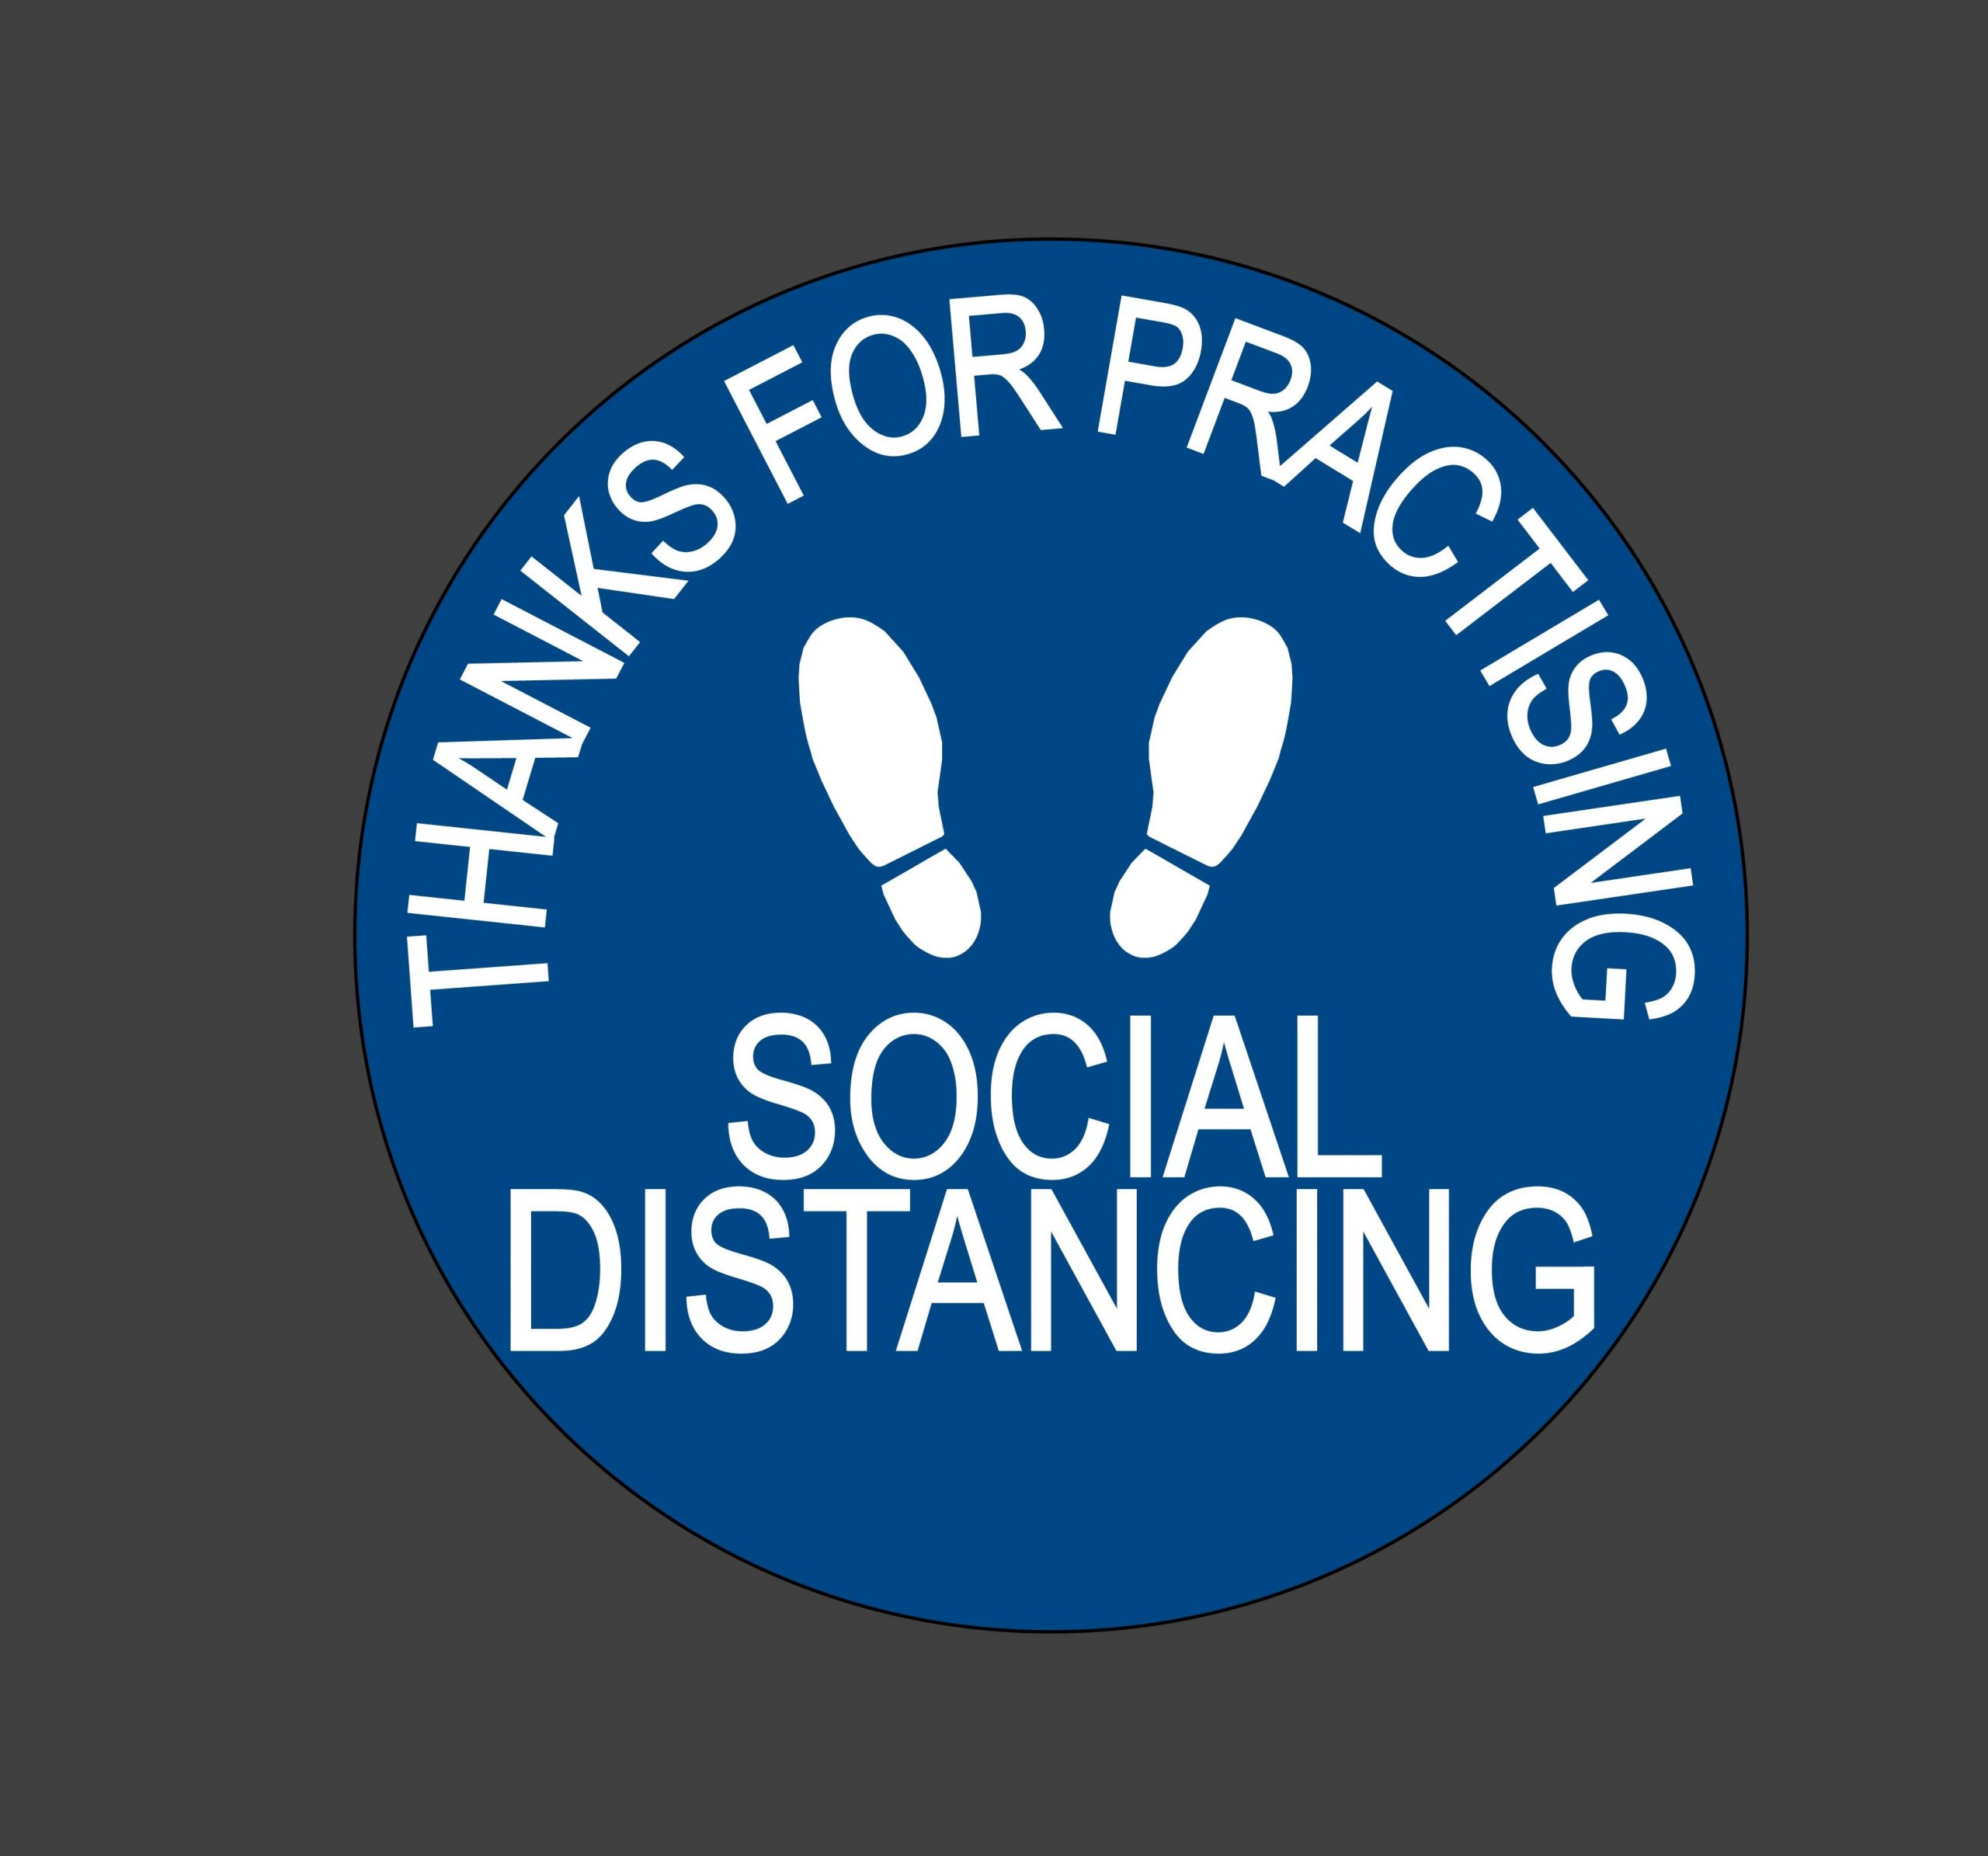 Social-Distancing-Logo-Ideas-64888-Copy